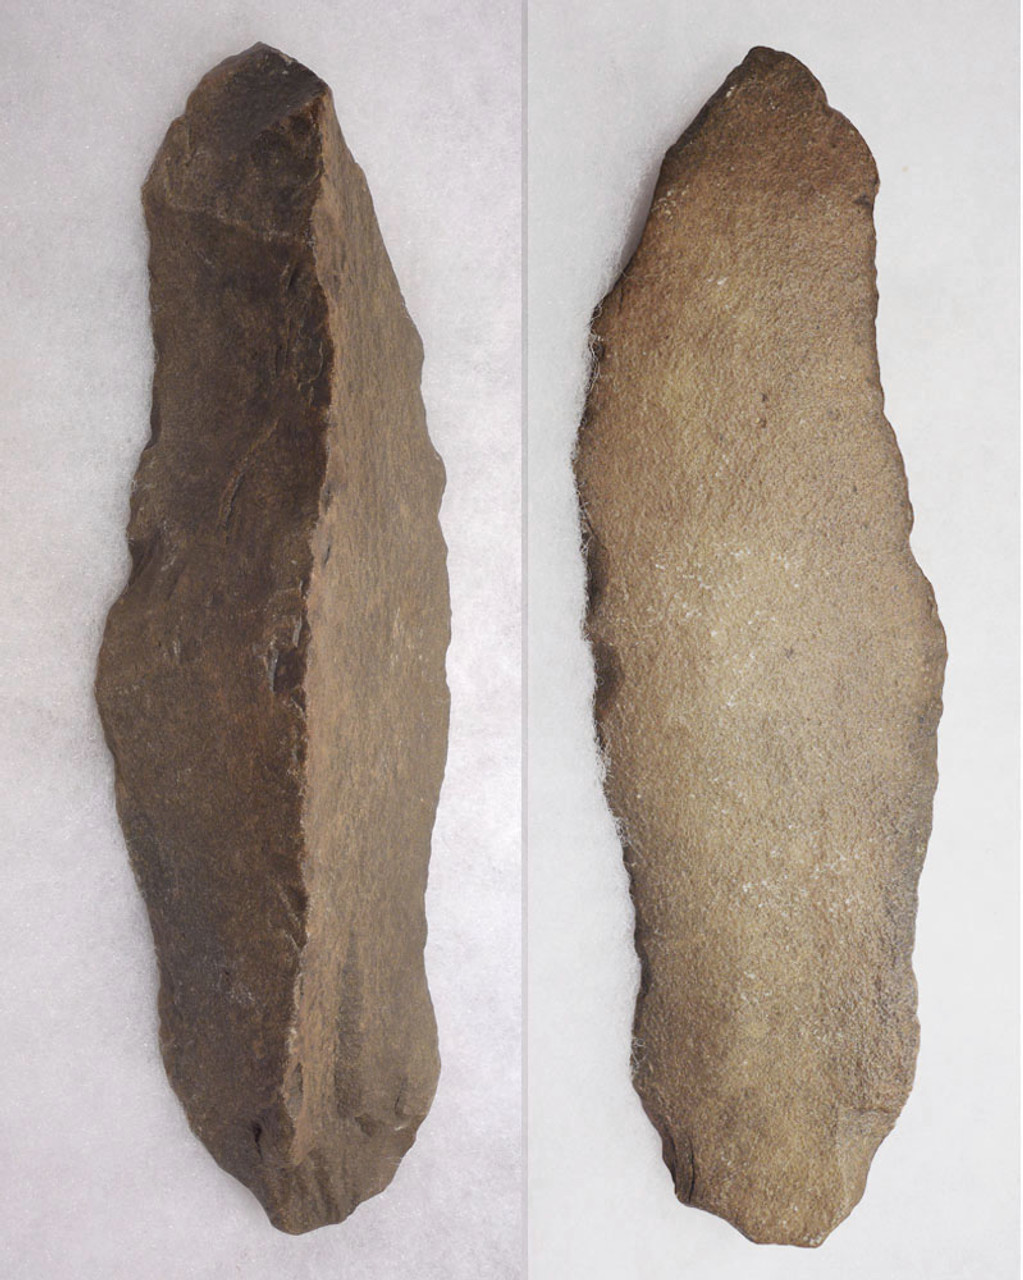 INTELLIGENT DESIGN LARGE PREHISTORIC STONE AGE ACHEULEAN KNIFE MADE BY HOMO ERGASTER  *ACH418